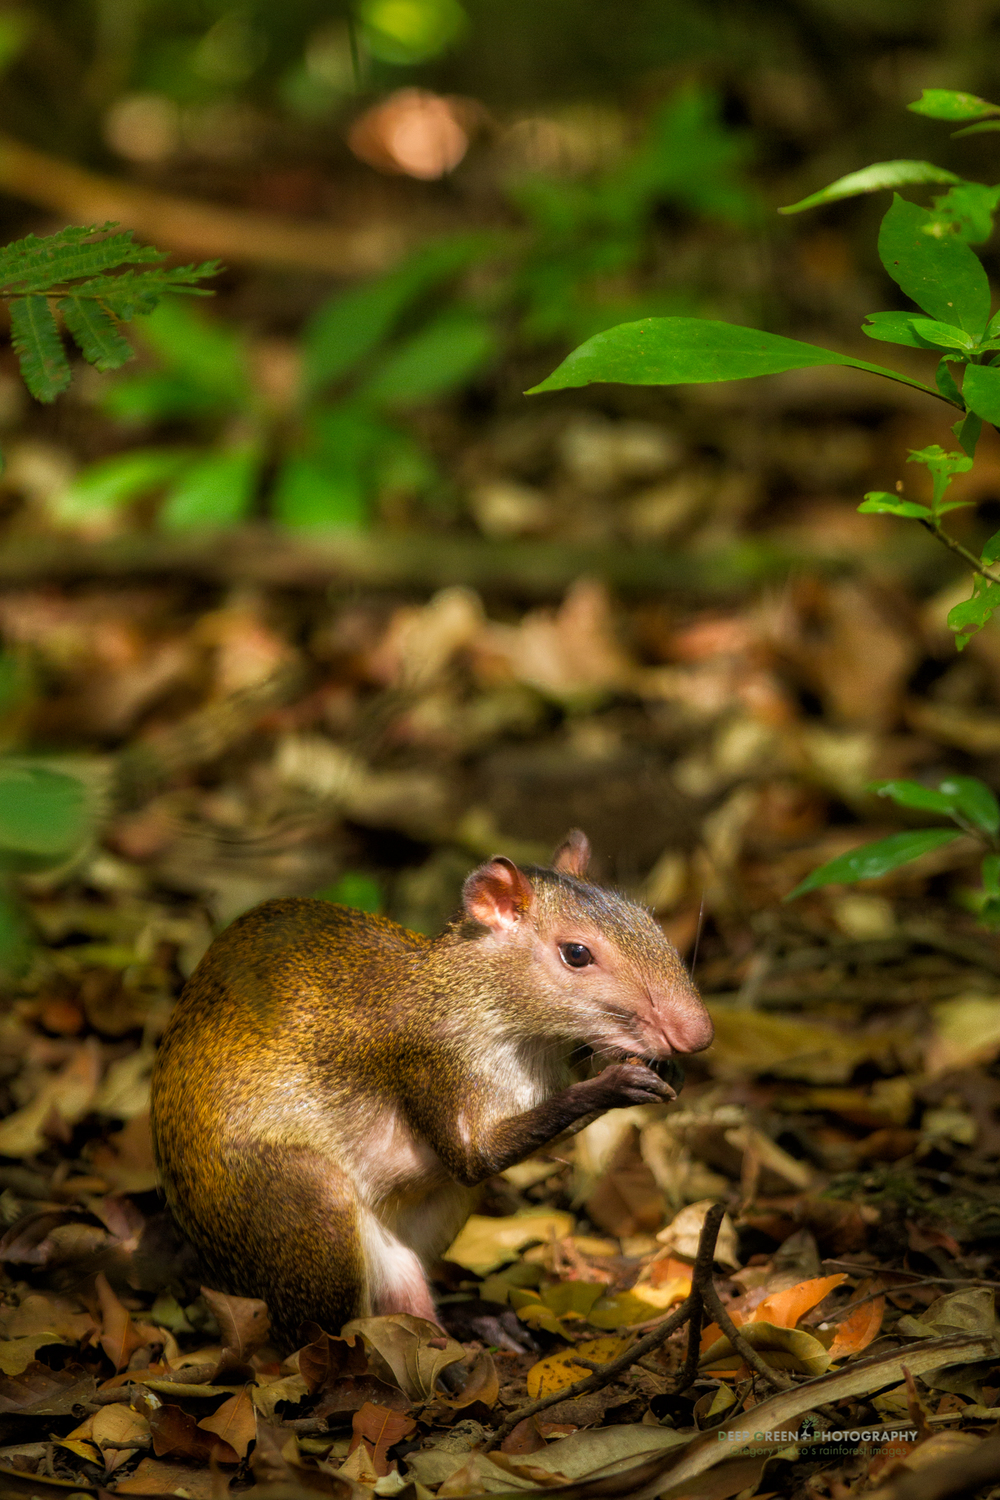 An agouti in Manuel Antonio National Park